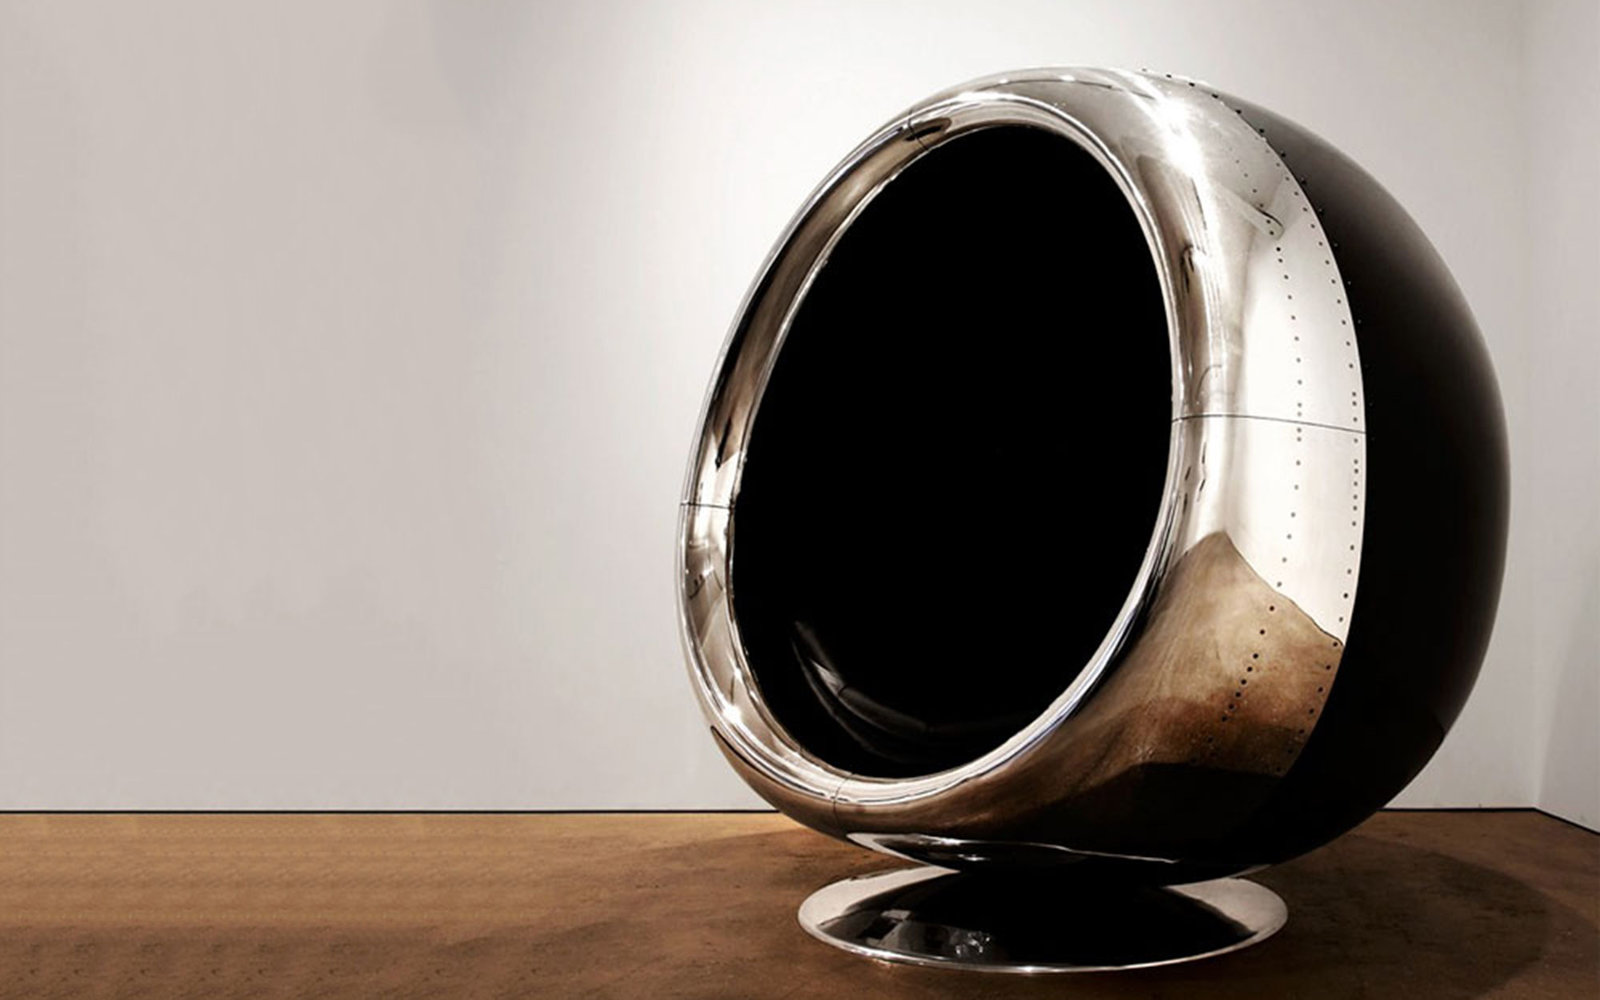 Upcycled Super Comfy Looking Chair Made From An Airplane Cowling